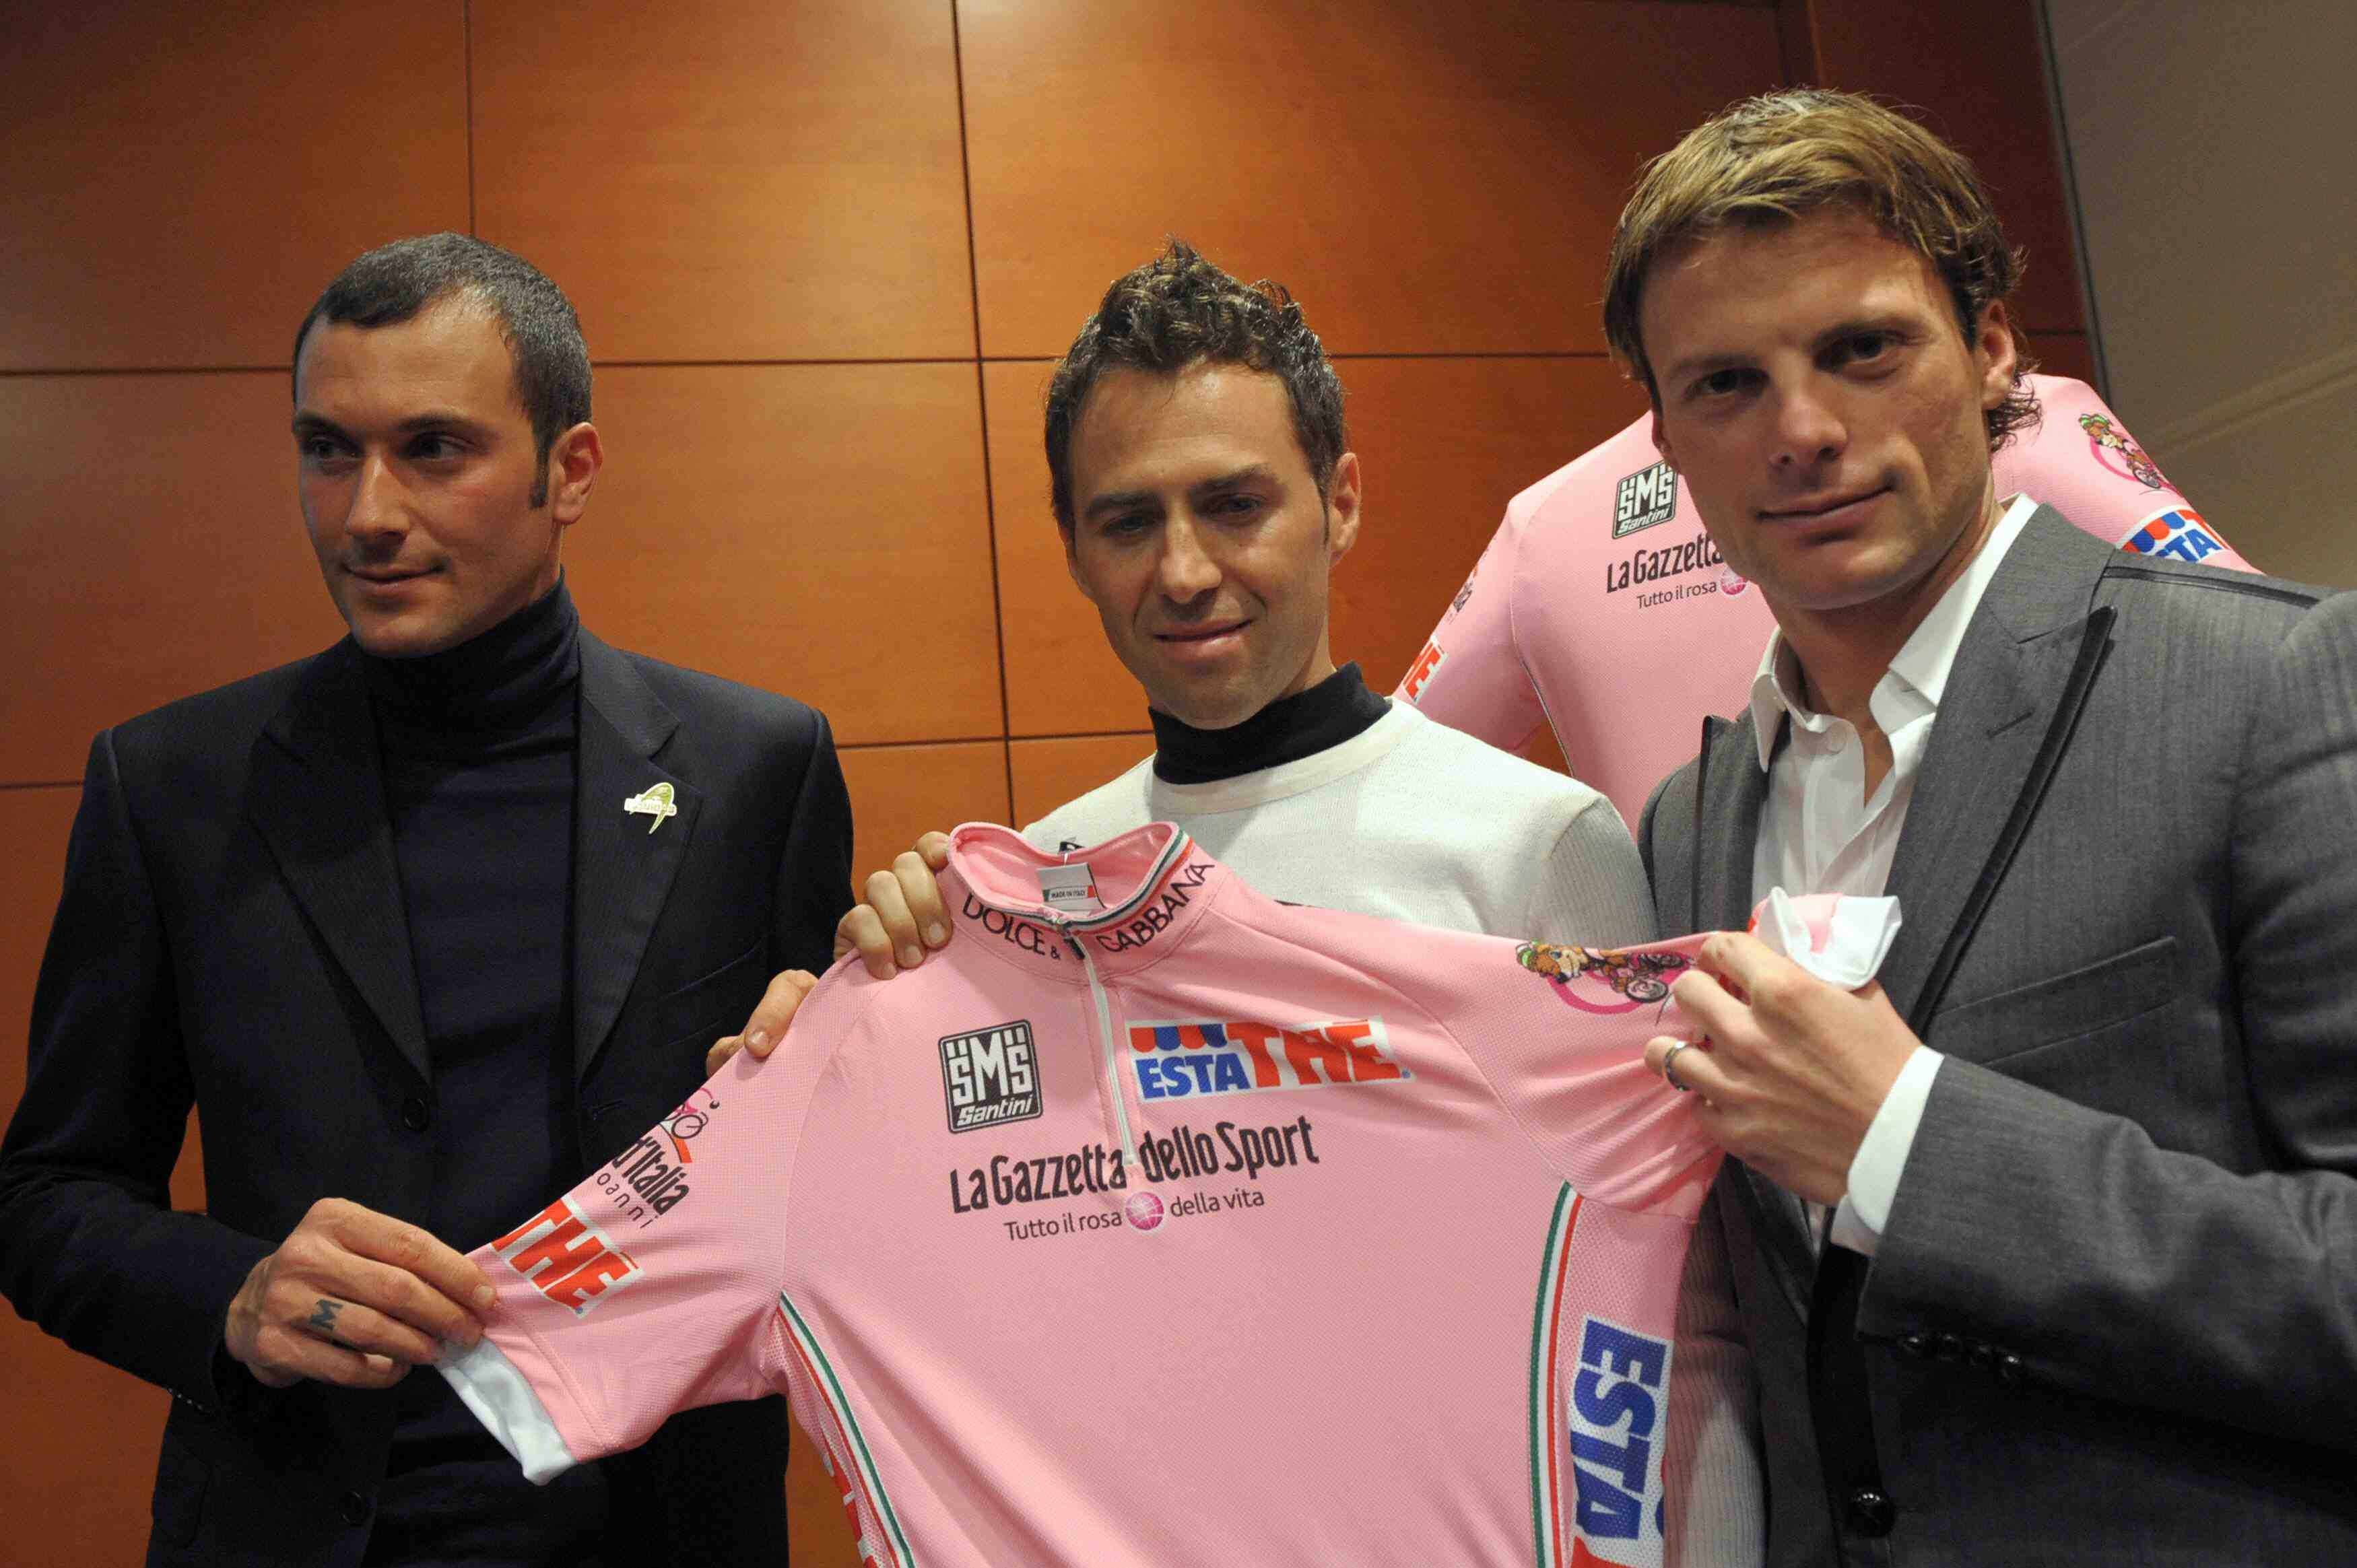 Former Giro winners Ivan Basso (2006), Gilberto Simoni ('01 and '03) join Danilo Di Luca ('07) during the presentation of the 100th anniversary of the leader's pink jersey on the eve of the official 2009 race presentation.